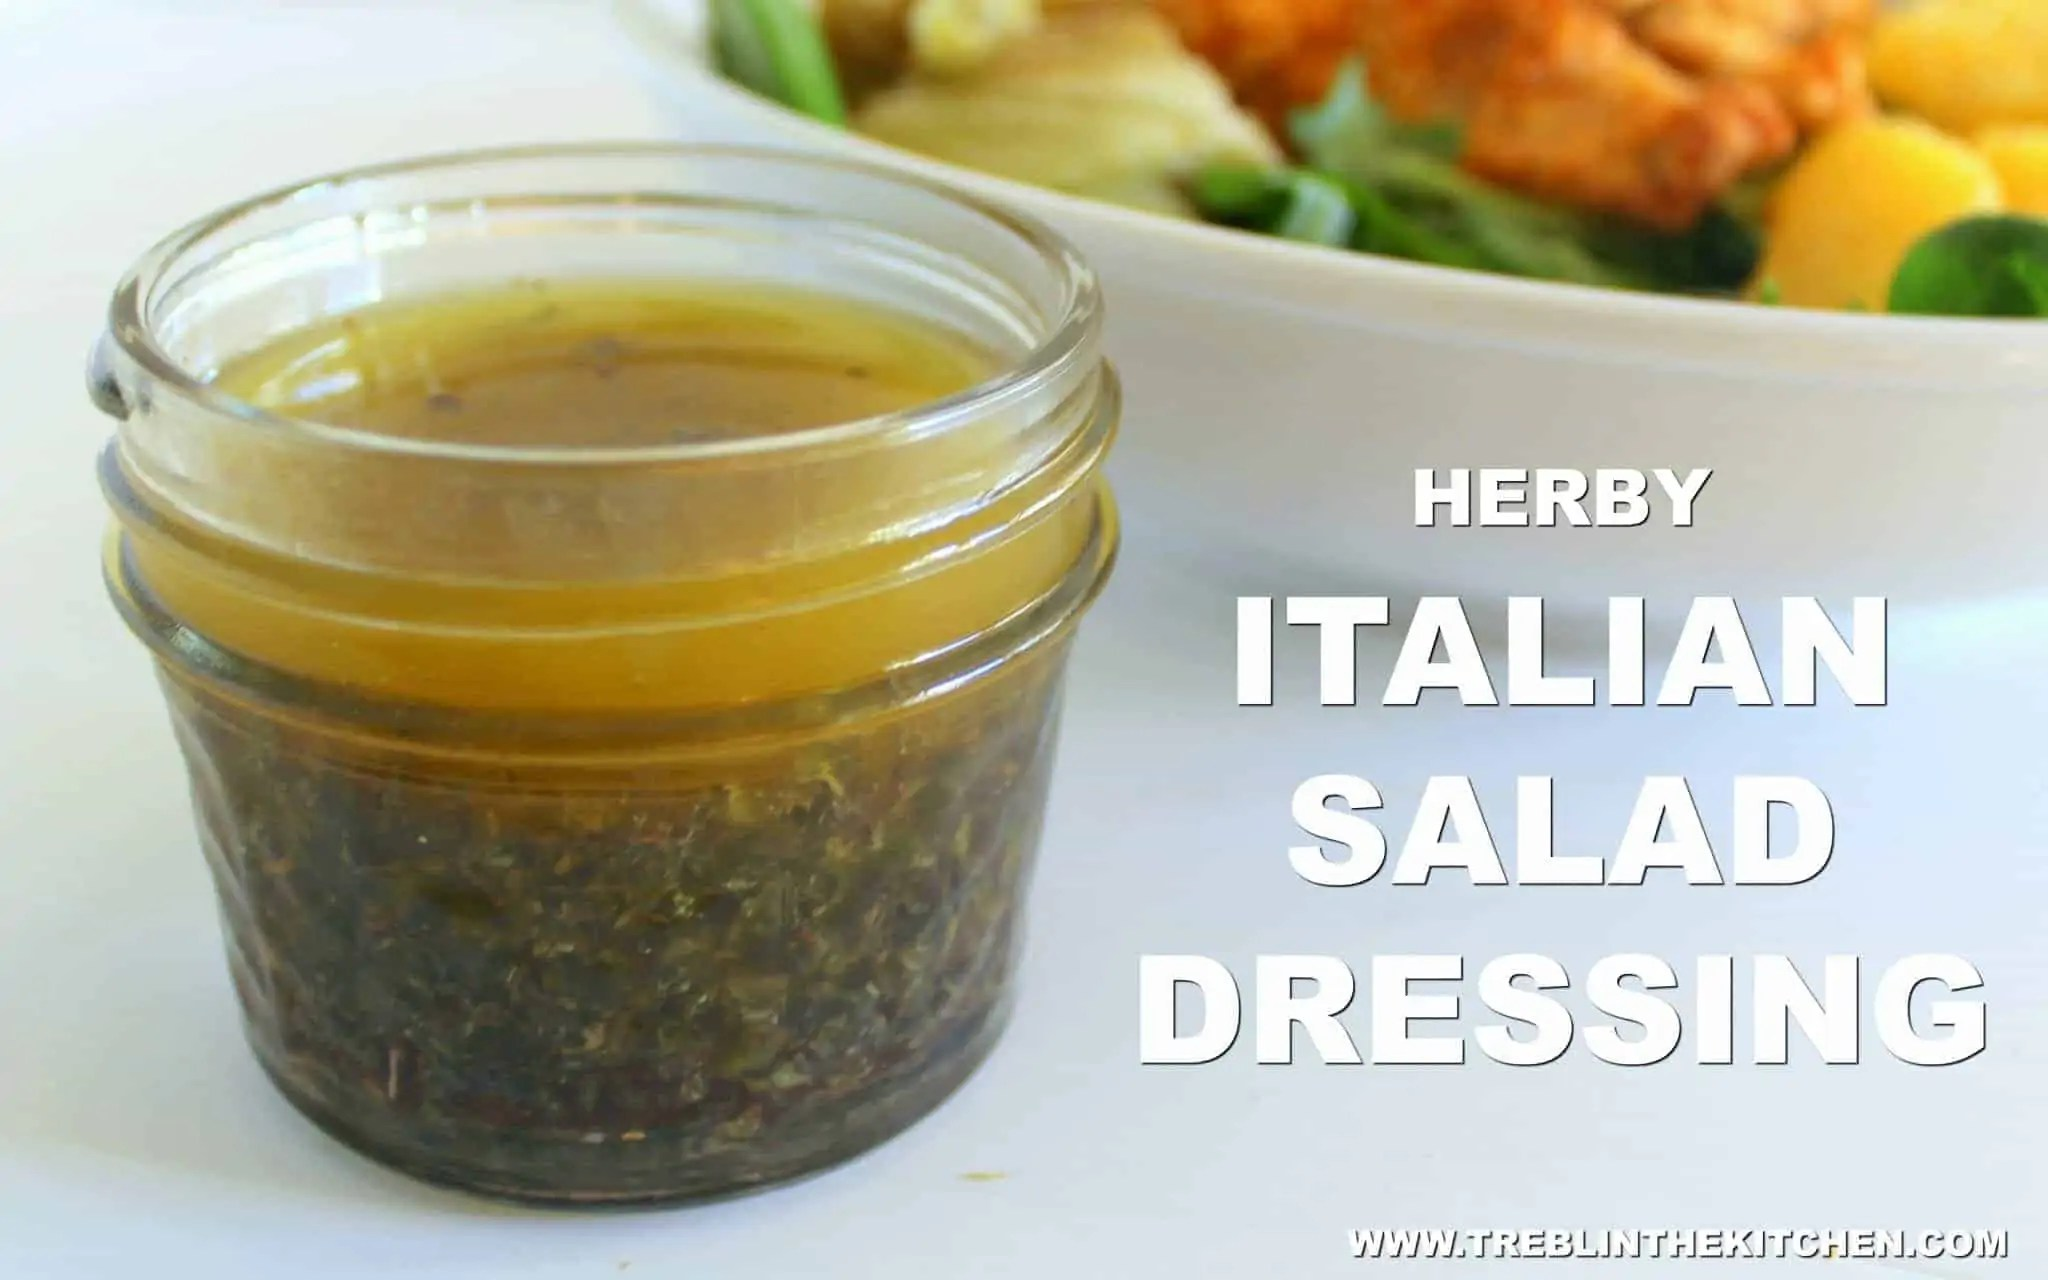 HERBY ITALIAN SALAD DRESSING from Treble in the Kitchen